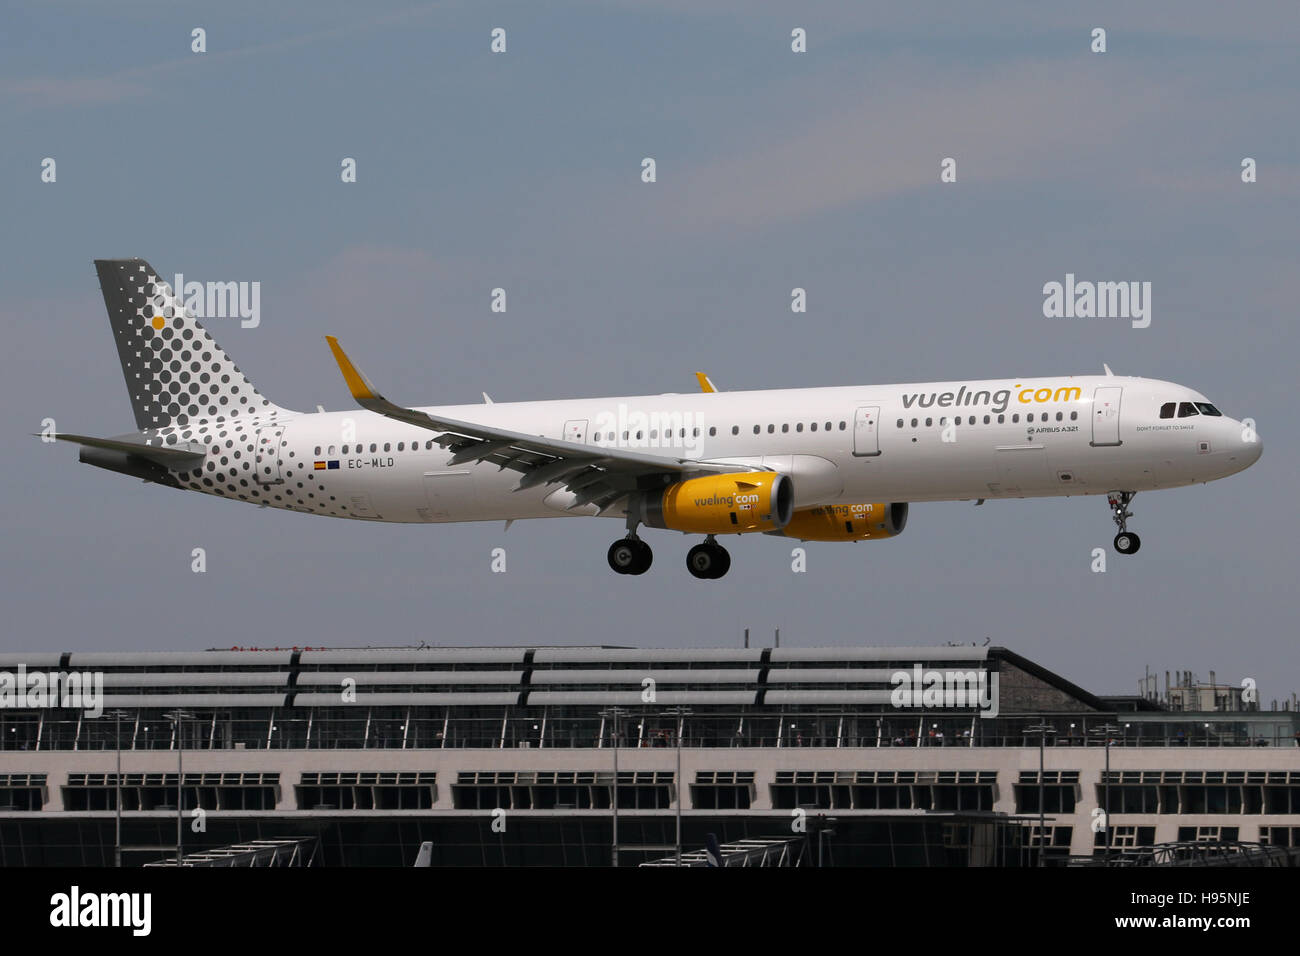 Stuttgart, Germany – May 22, 2016: Vueling, Airbus A321 is landing at Stuttgart Airport - Stock Image